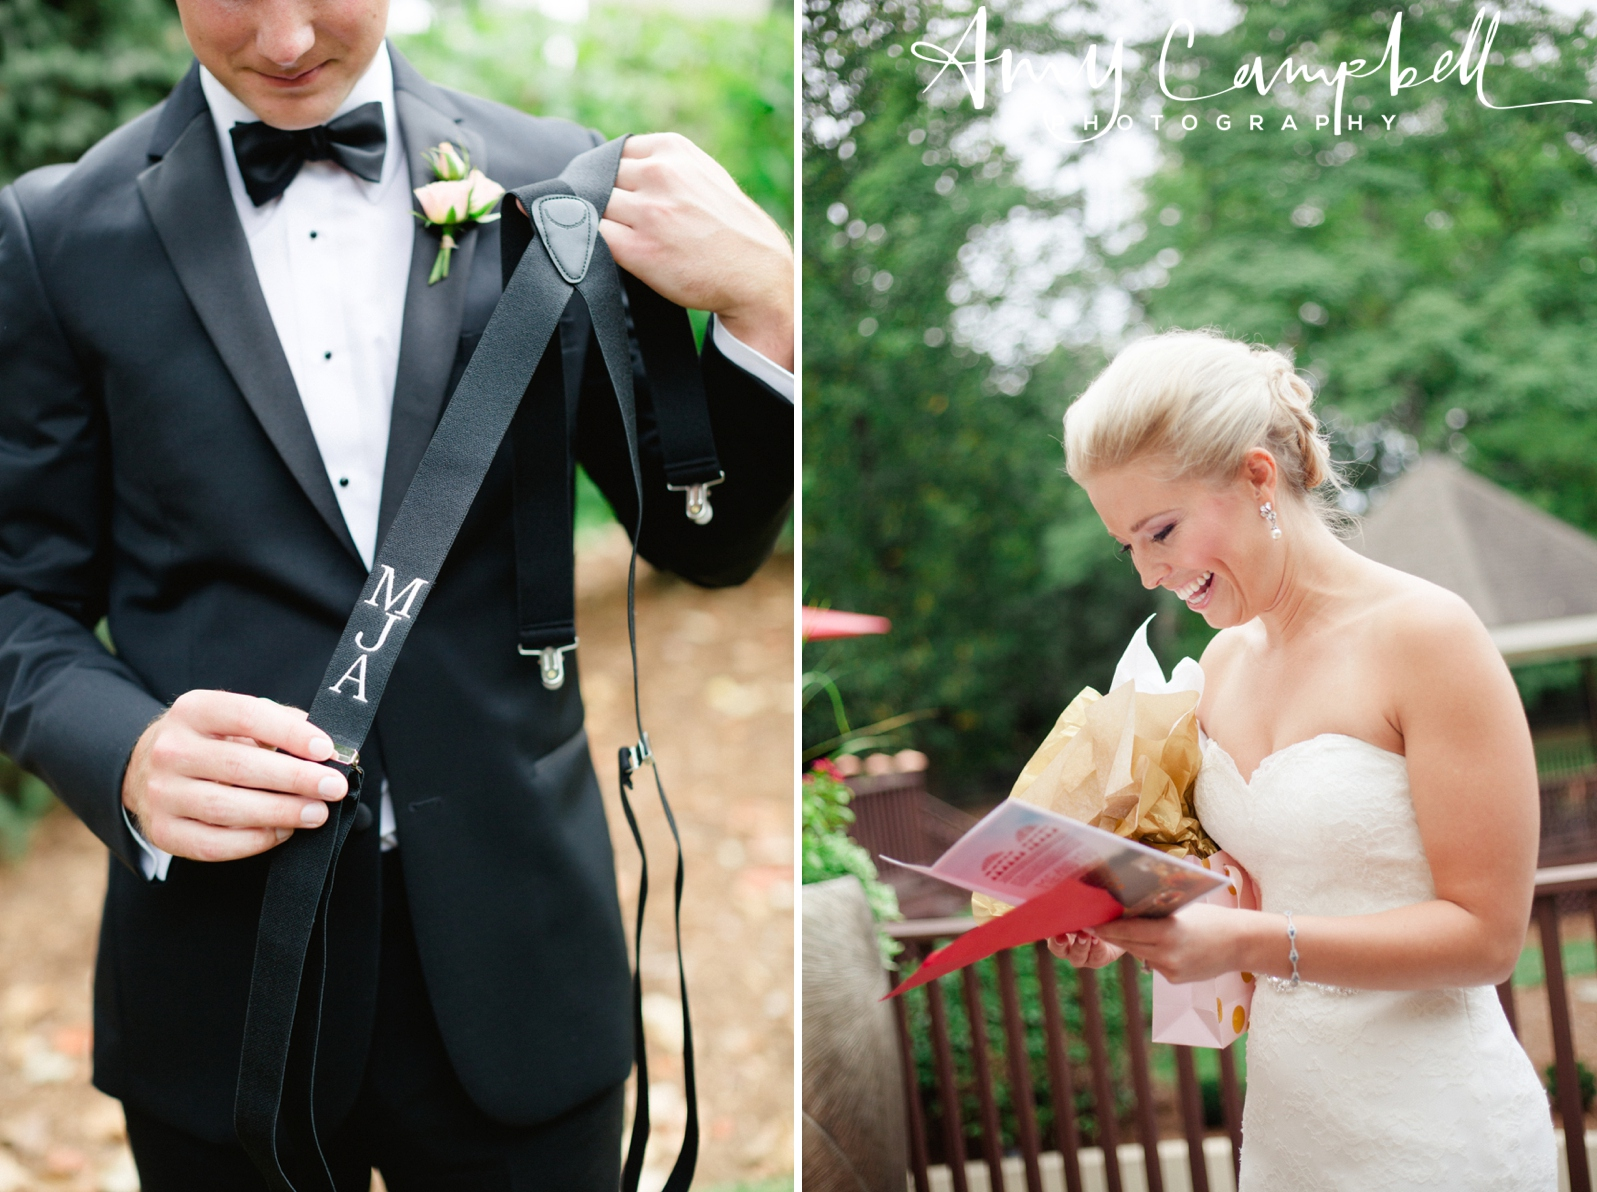 chelseamike_wedss_pics_amycampbellphotography_033.jpg